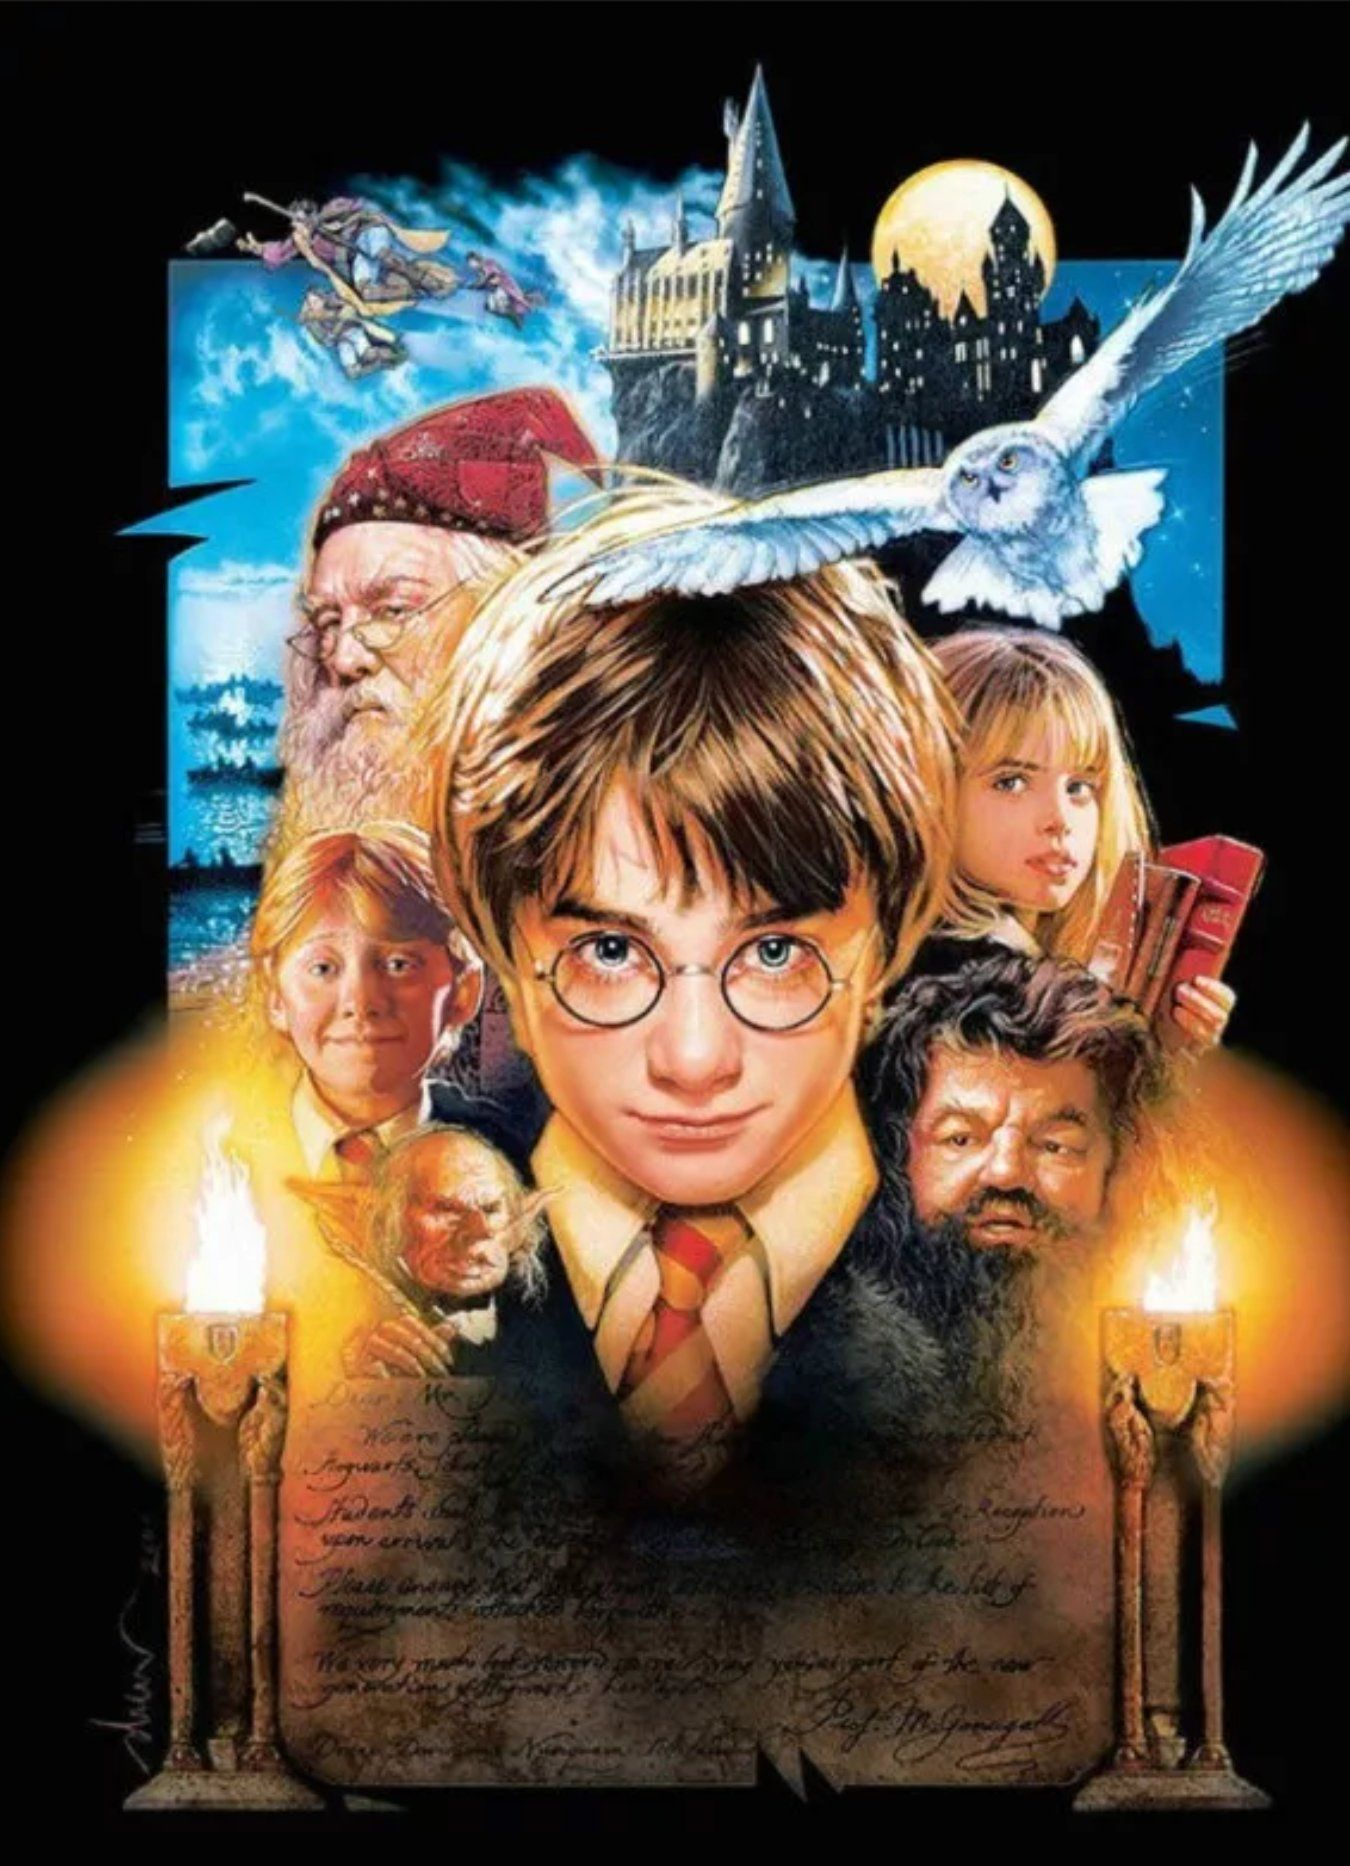 Todays Masterpiece Diamond Painting From Harry Potter And The Philosophers Stone Etsy Shop Harry Potter Movie Posters Harry Potter Movies Harry Potter Full